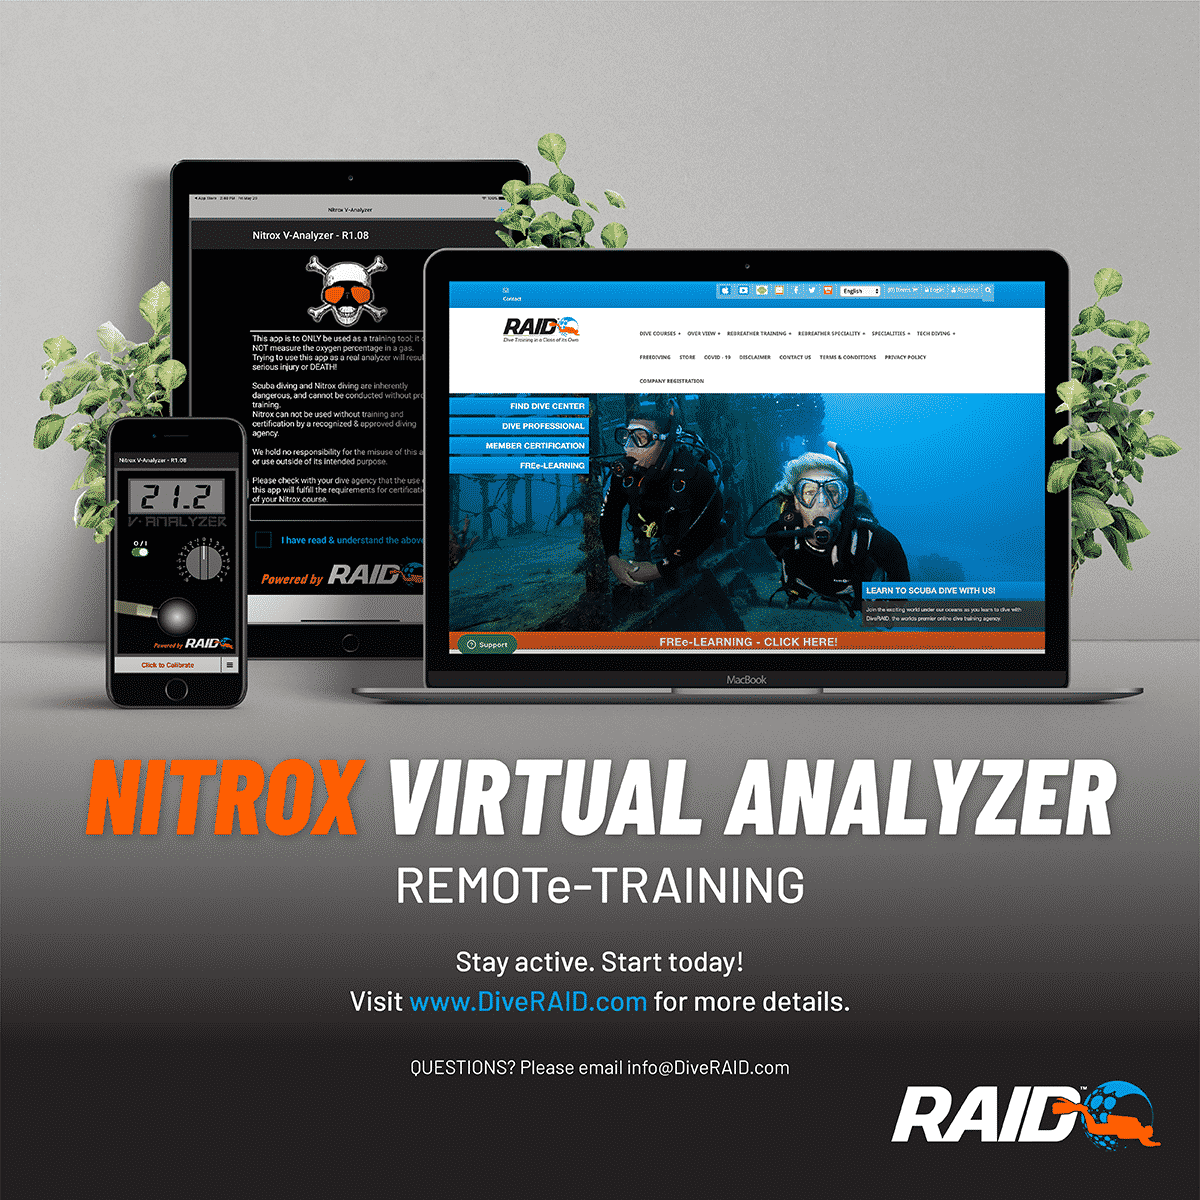 RAID's Virtual Analyzer App